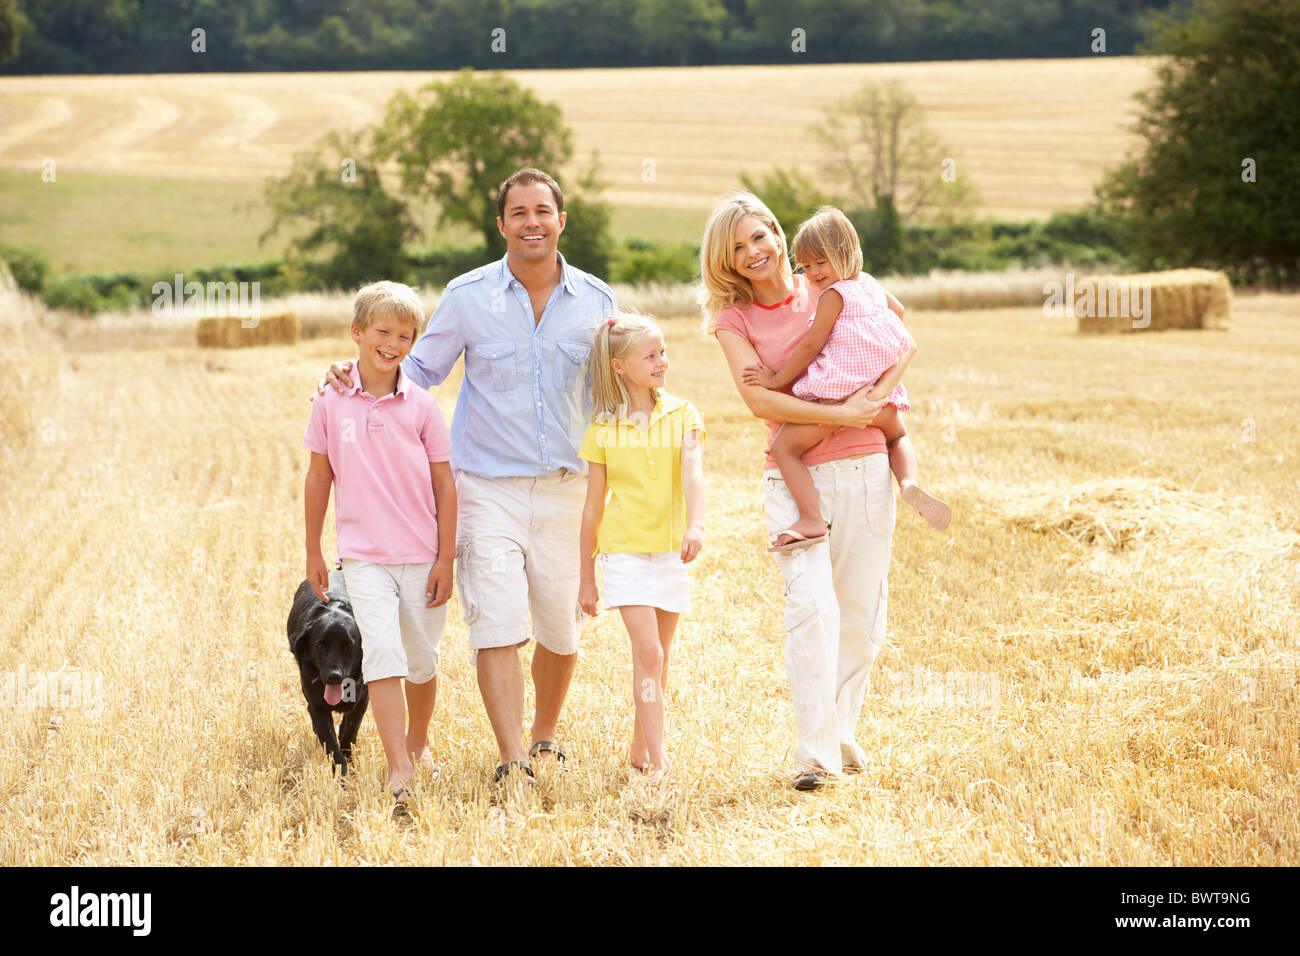 Family Walking Together Through Summer Harvested Field - Stock Image